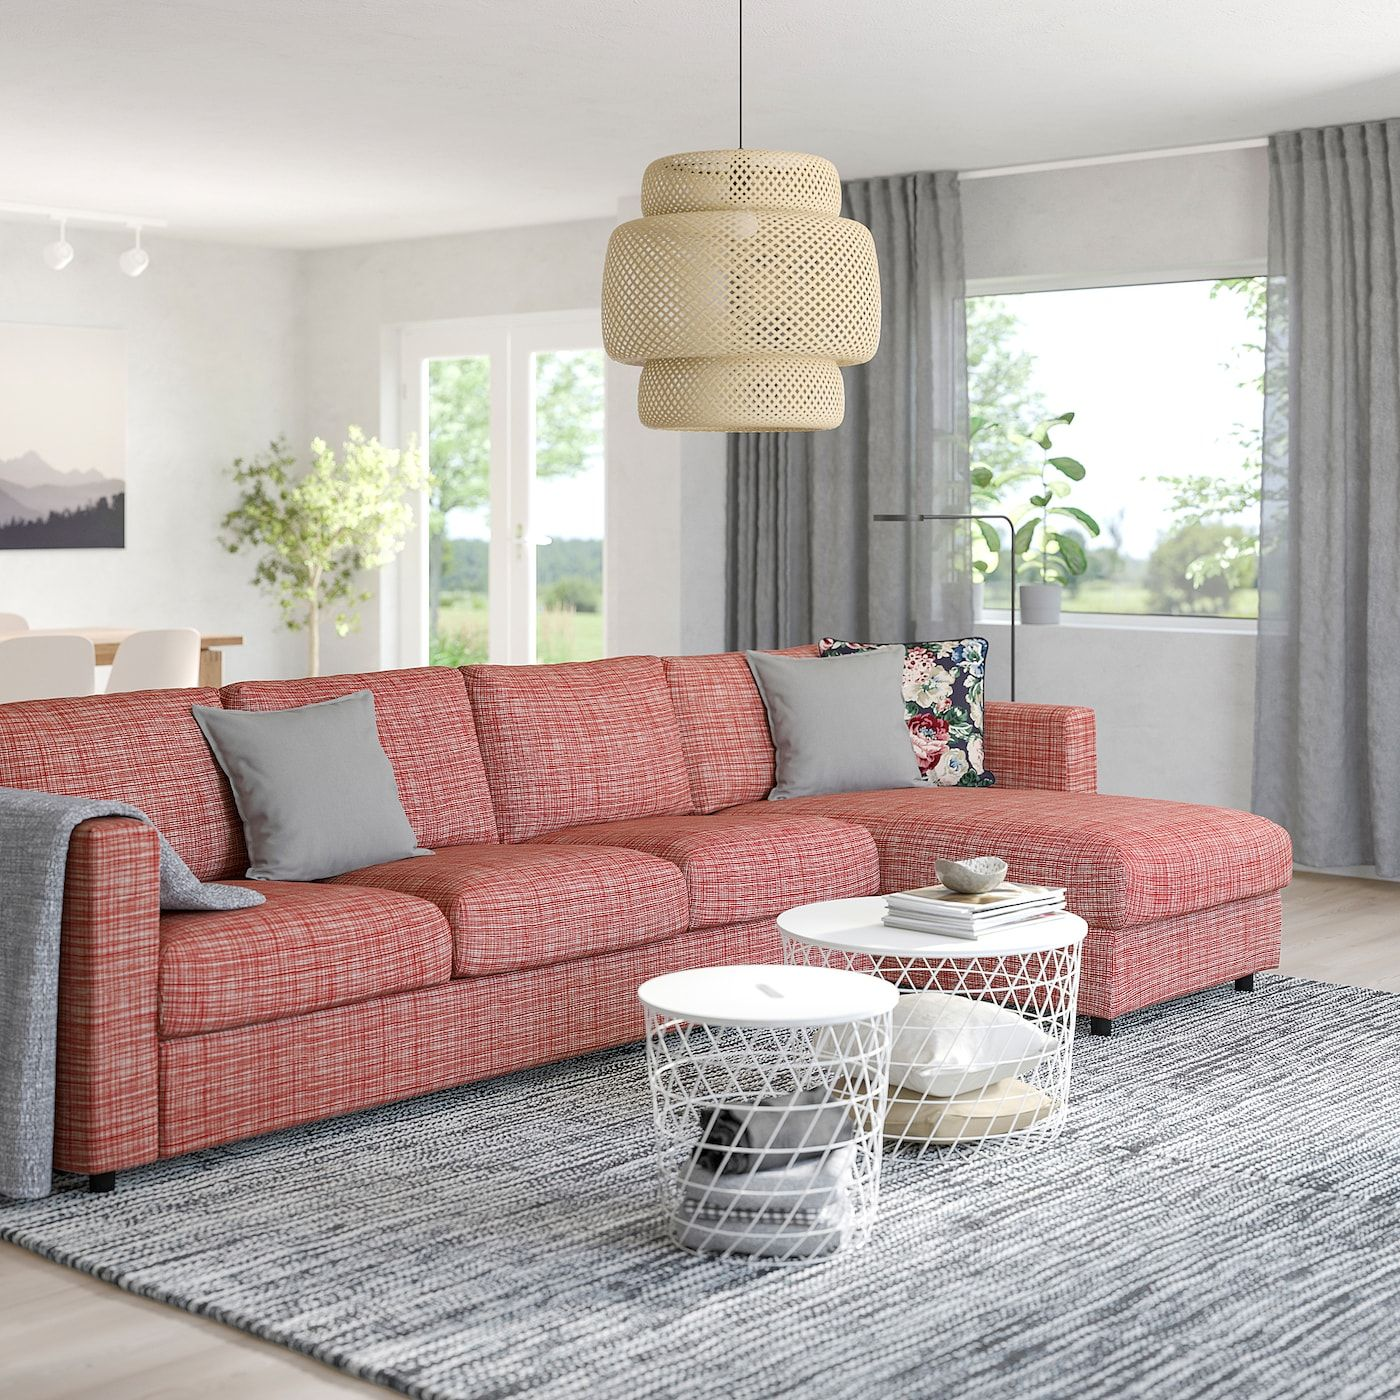 Vimle Sectional 4 Seat With Chaise Dalstorp Multicolor Ikea Möbel Sofa Ecksofa Schlaffunktion Bequemes Sofa